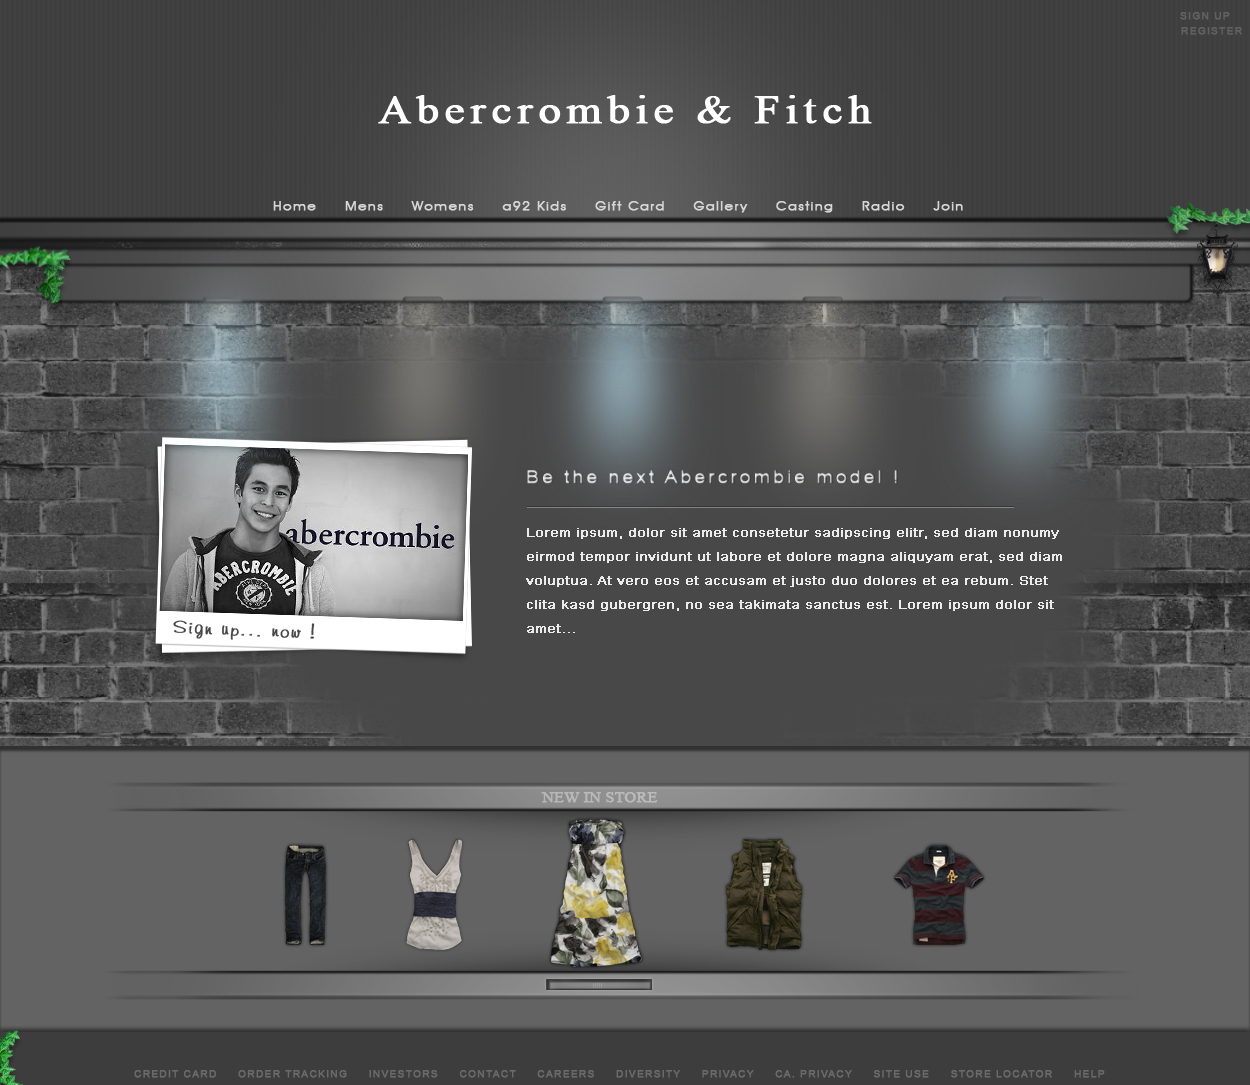 abercrombie chat sites High quality, collegiate-inspired, casual luxury clothing  questions click here to chat or text with the tysons corner center concierge at (703) 997-0950.